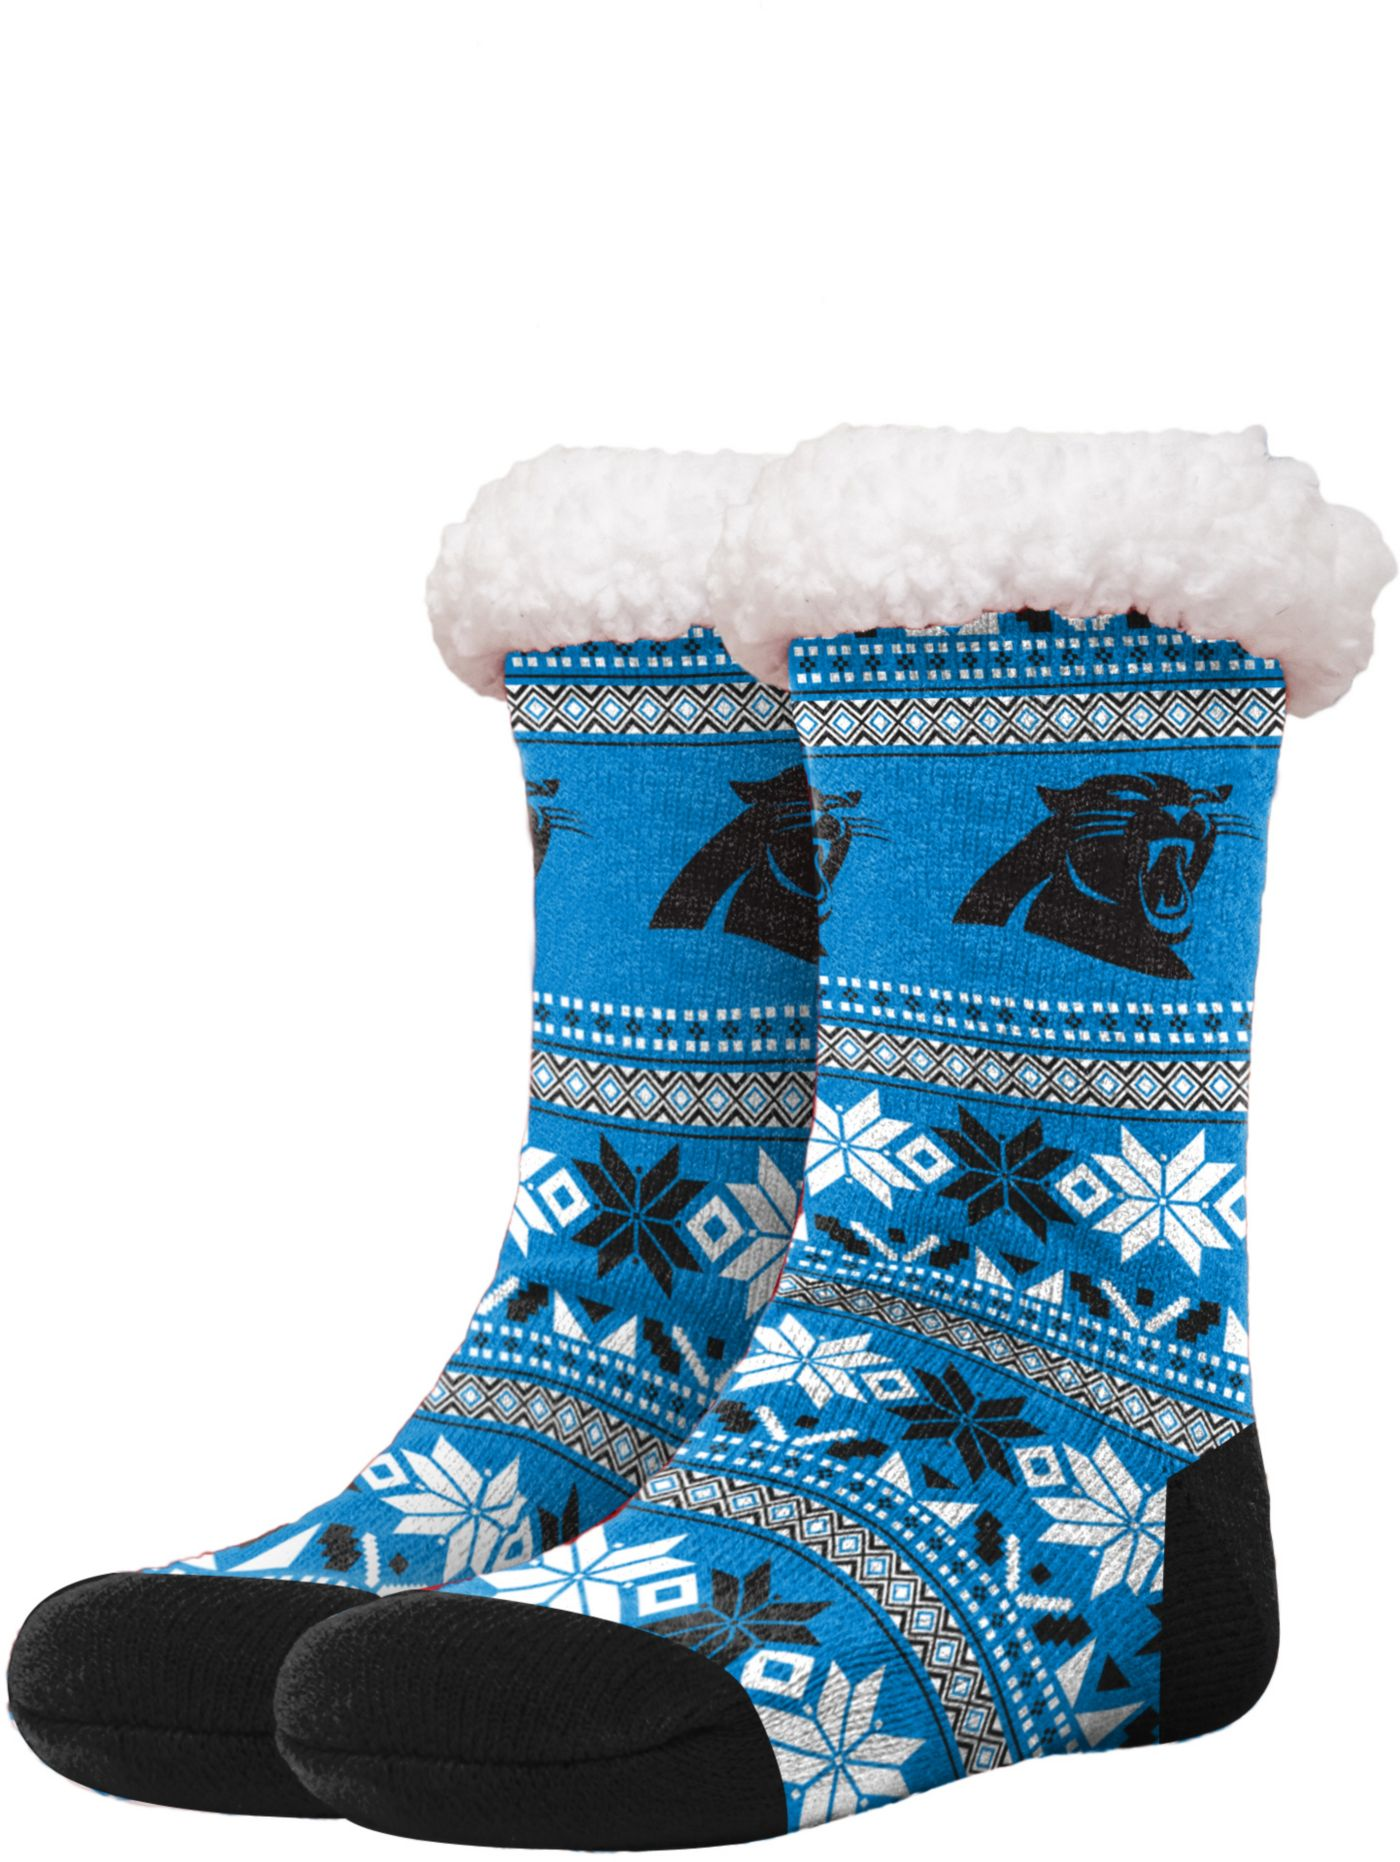 FOCO Carolina Panthers Footy Slippers